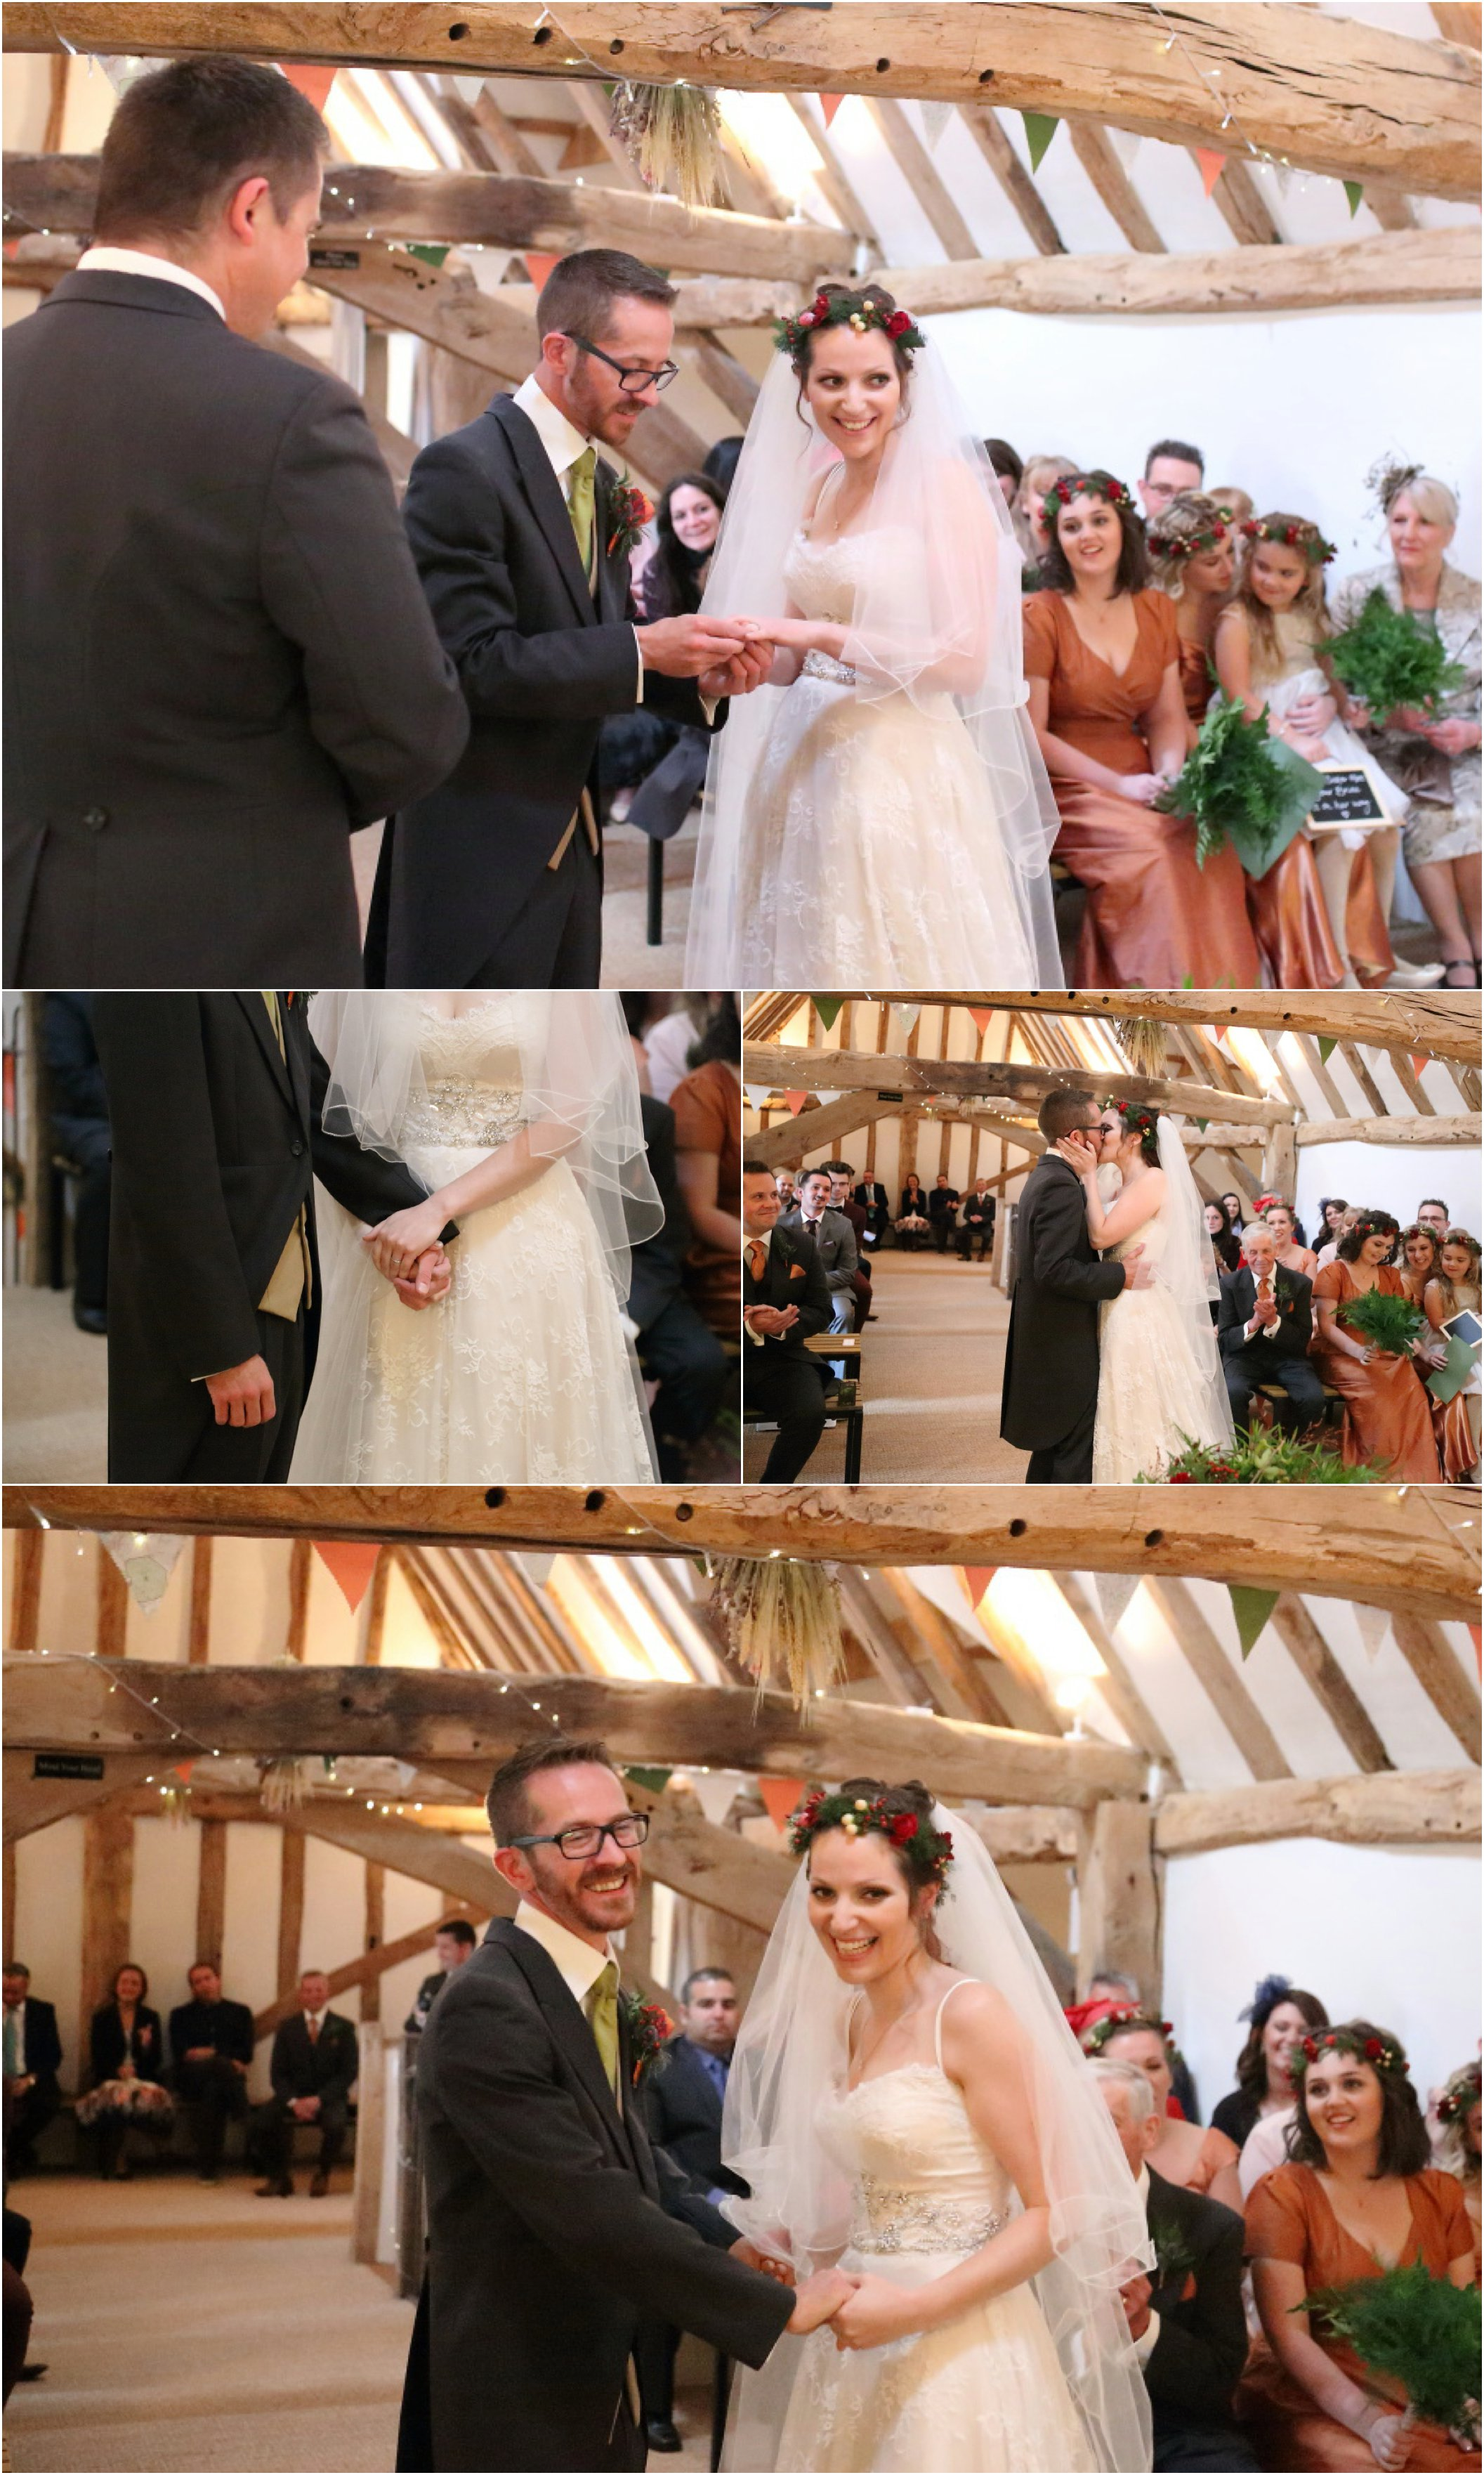 Moreves Barn wedding ceremnony, alternative wedding photography Suffolk